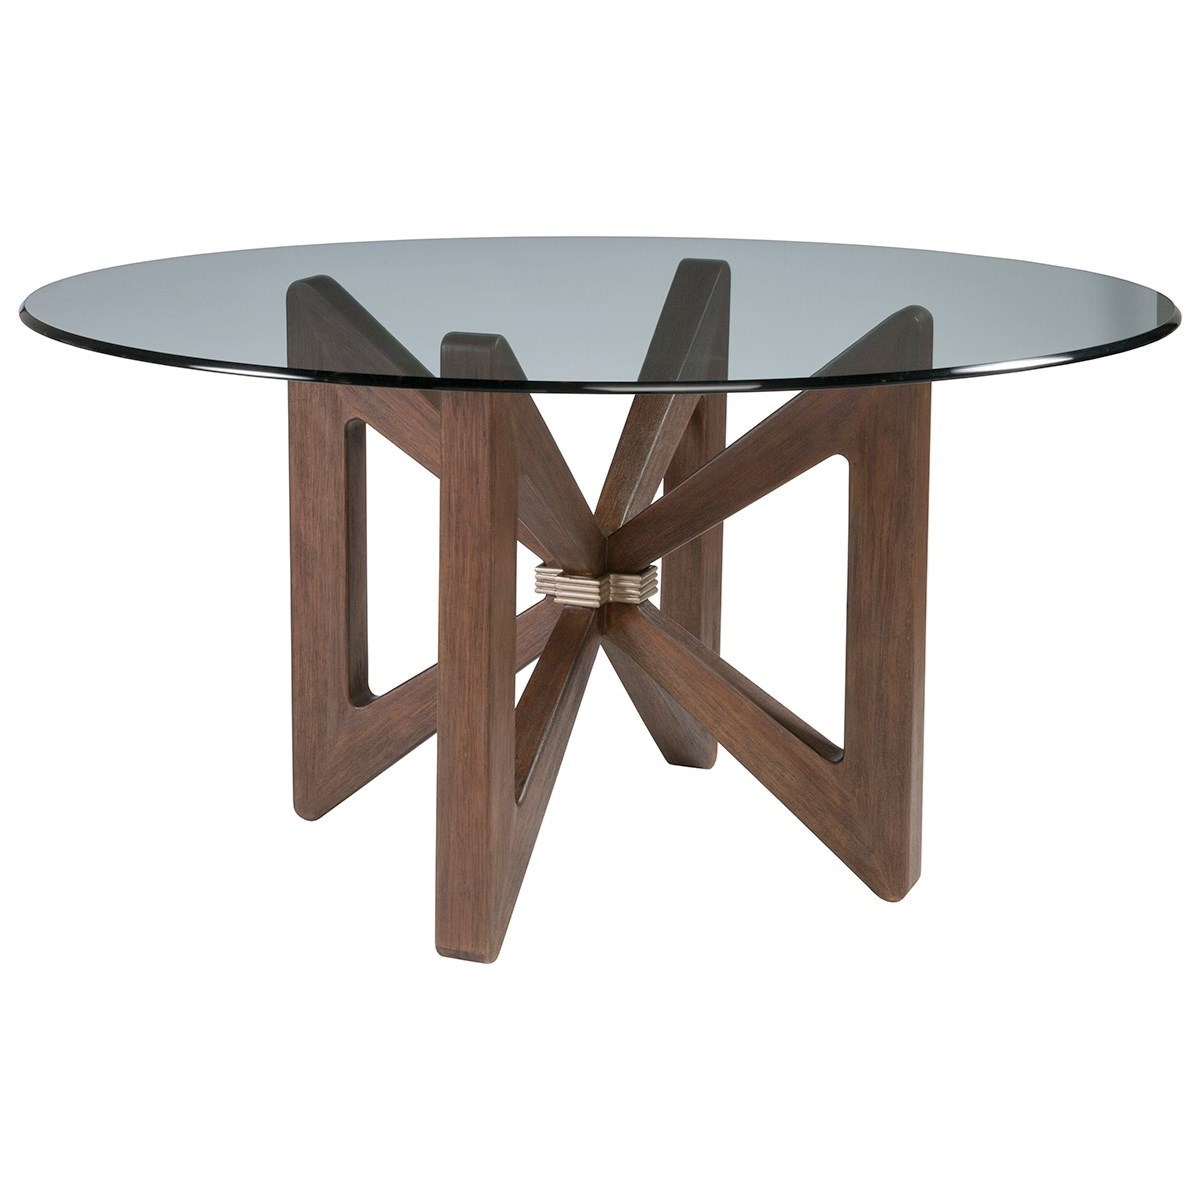 Cohesion Butterfly Round Dining Table With Glass Top by Artistica at Baer's Furniture